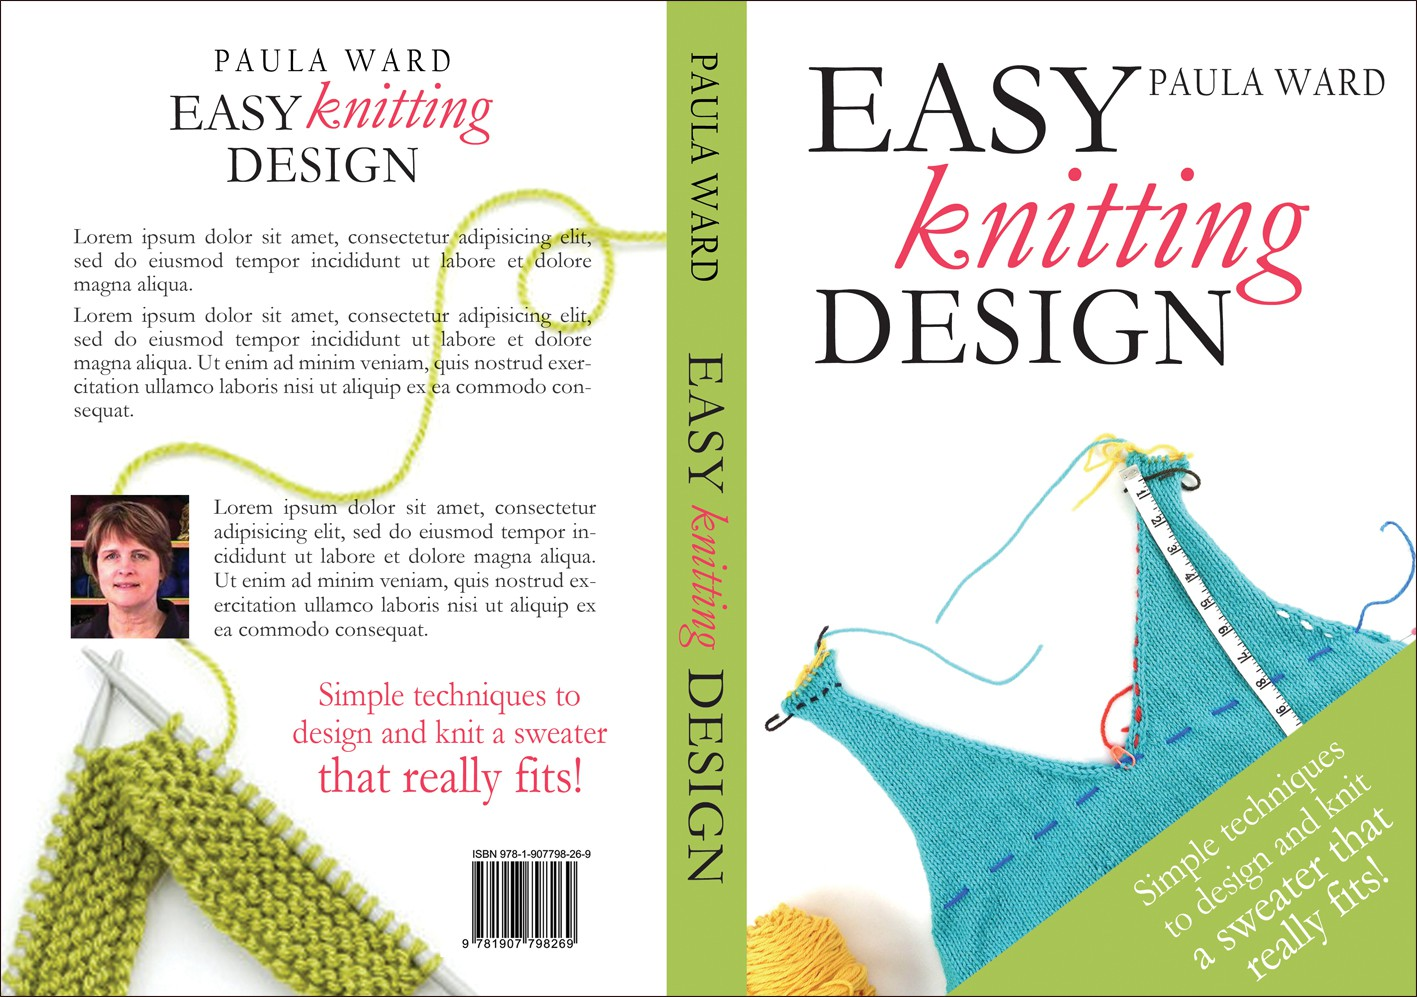 Create the next book or magazine cover for Easy Knitting Design